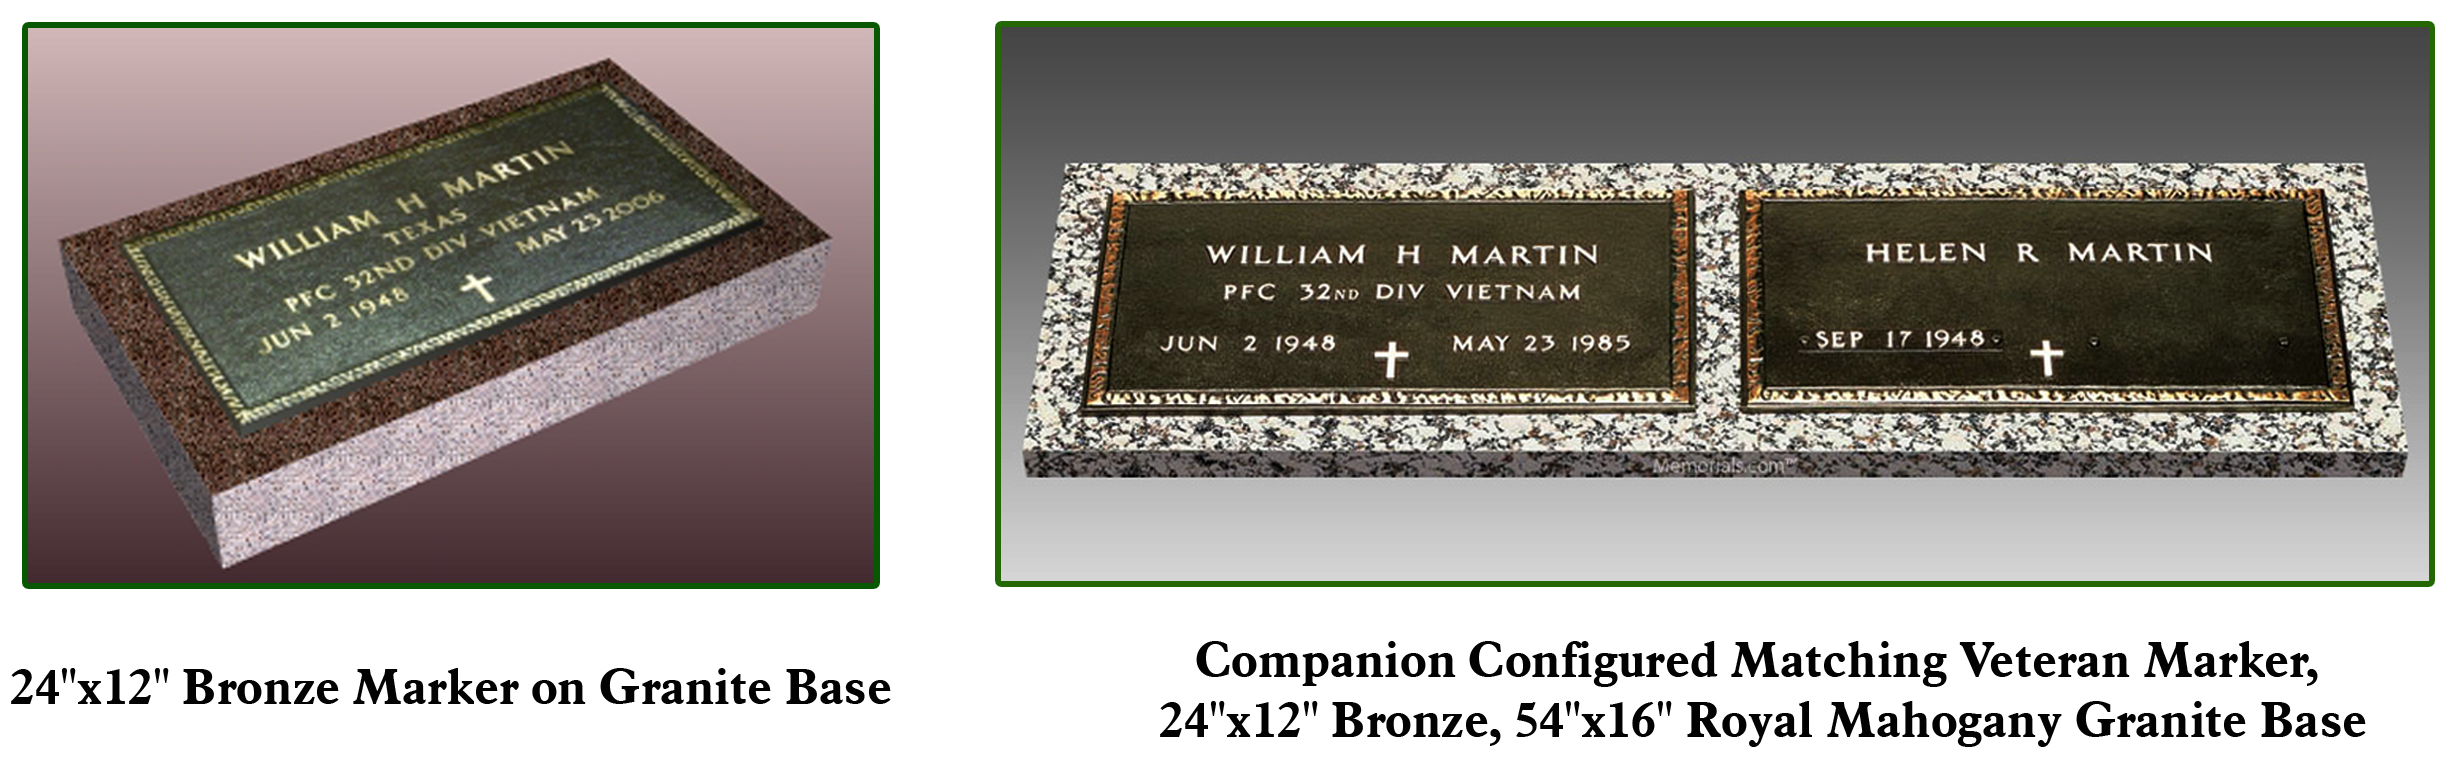 Laser engraving infant cemetery markers and monuments